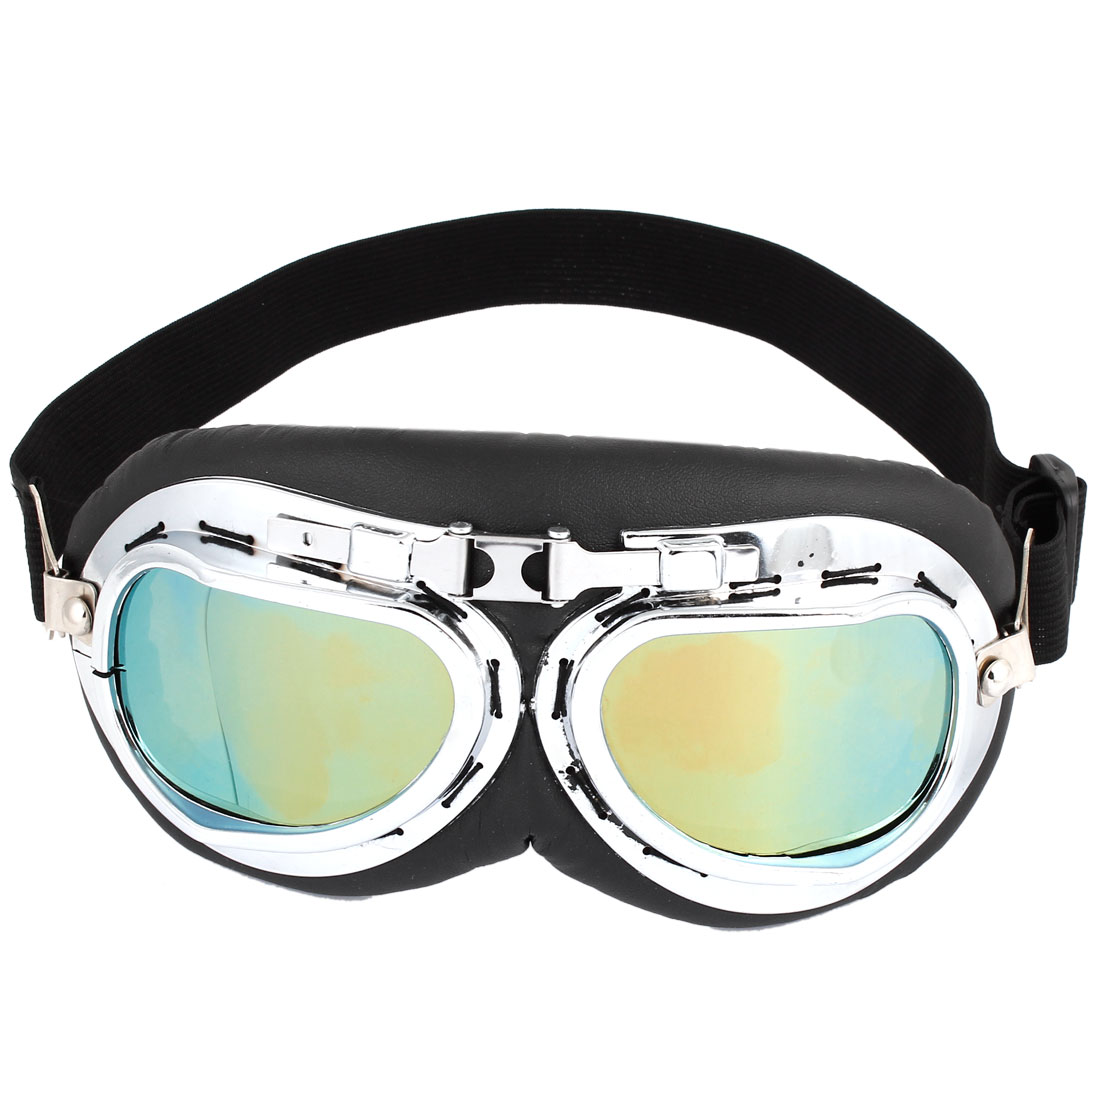 Adjustable Elastic Strap Yellow Lens Full Frame Motorbike Goggles Sunglasses for Unisex